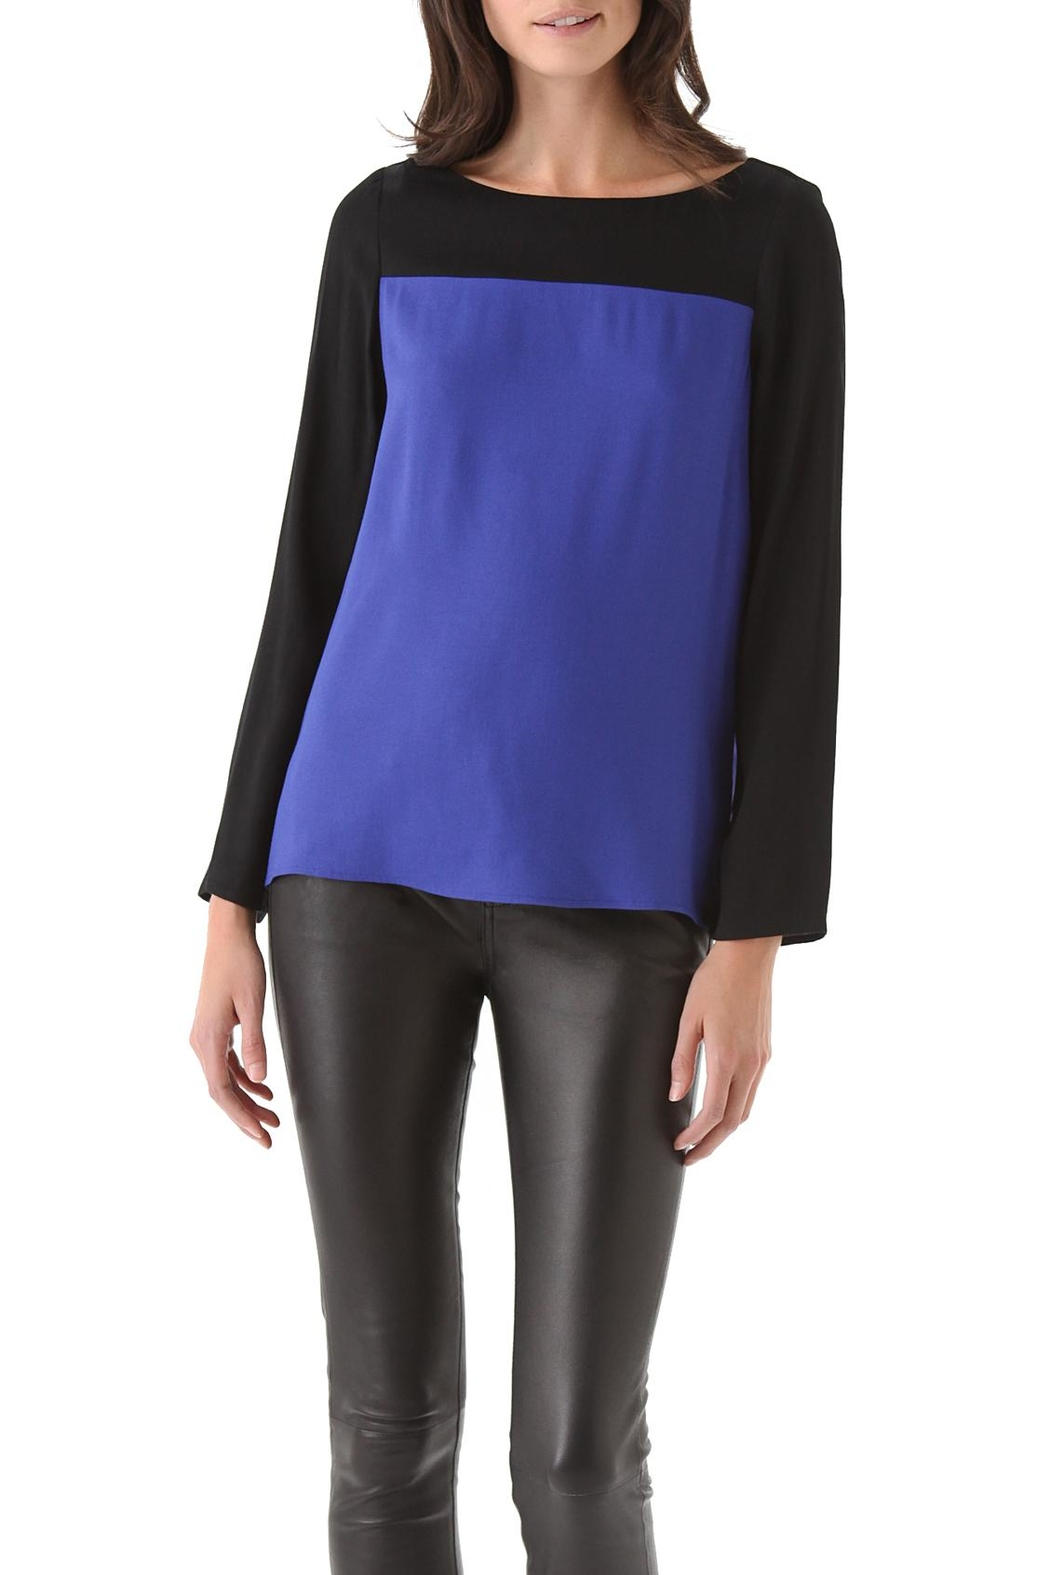 Joie Aliso Blouse - Side Cropped Image